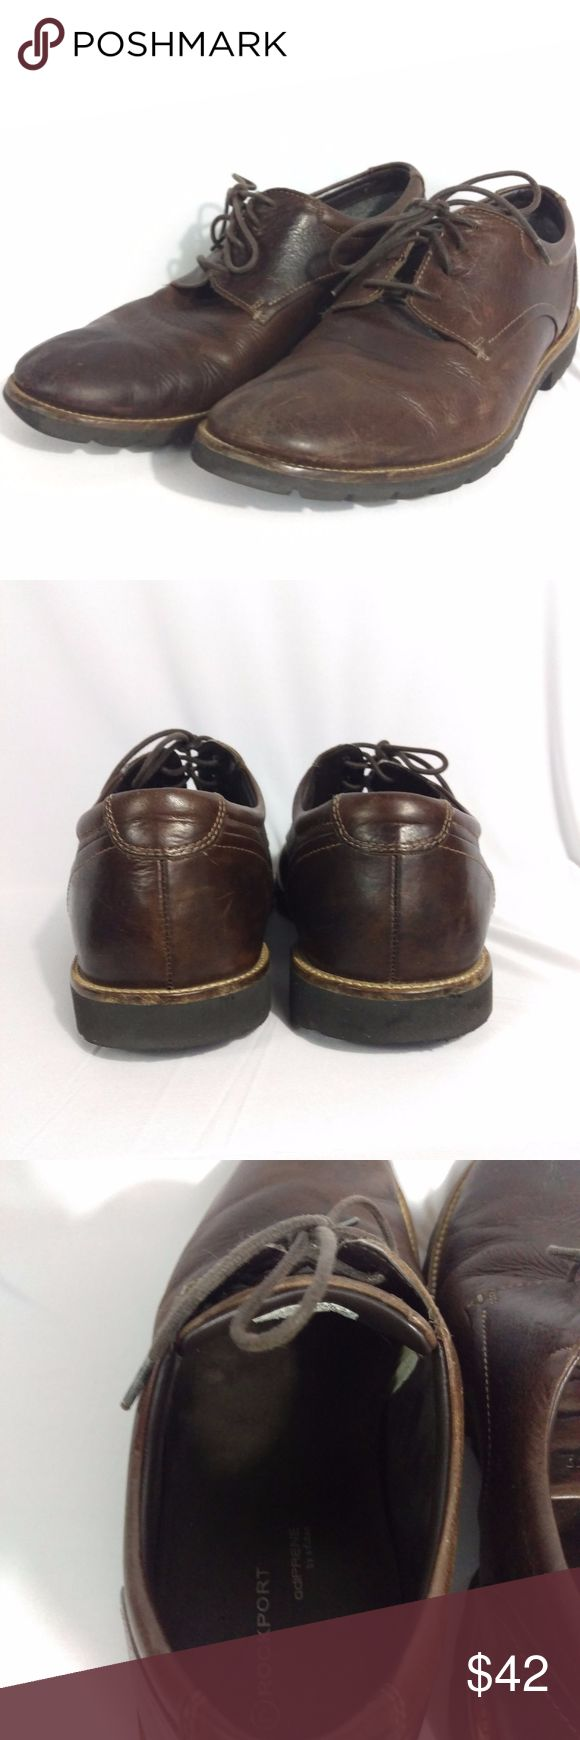 """Rockport Shoes Colben Plain Toe Oxford Brown 10M Rockport Mens Oxford Dress Casual Shoes  Size 10M Leather Upper,  Adidas Adiprene Sole Adidas Adiprene Cushioned Insole  Round toe, 1"""" Heel  Soles measure 12-1/4"""" in length by 4.5"""" at widest point   Light scuffing exactly as seen in photos. Rockport Shoes Oxfords & Derbys"""